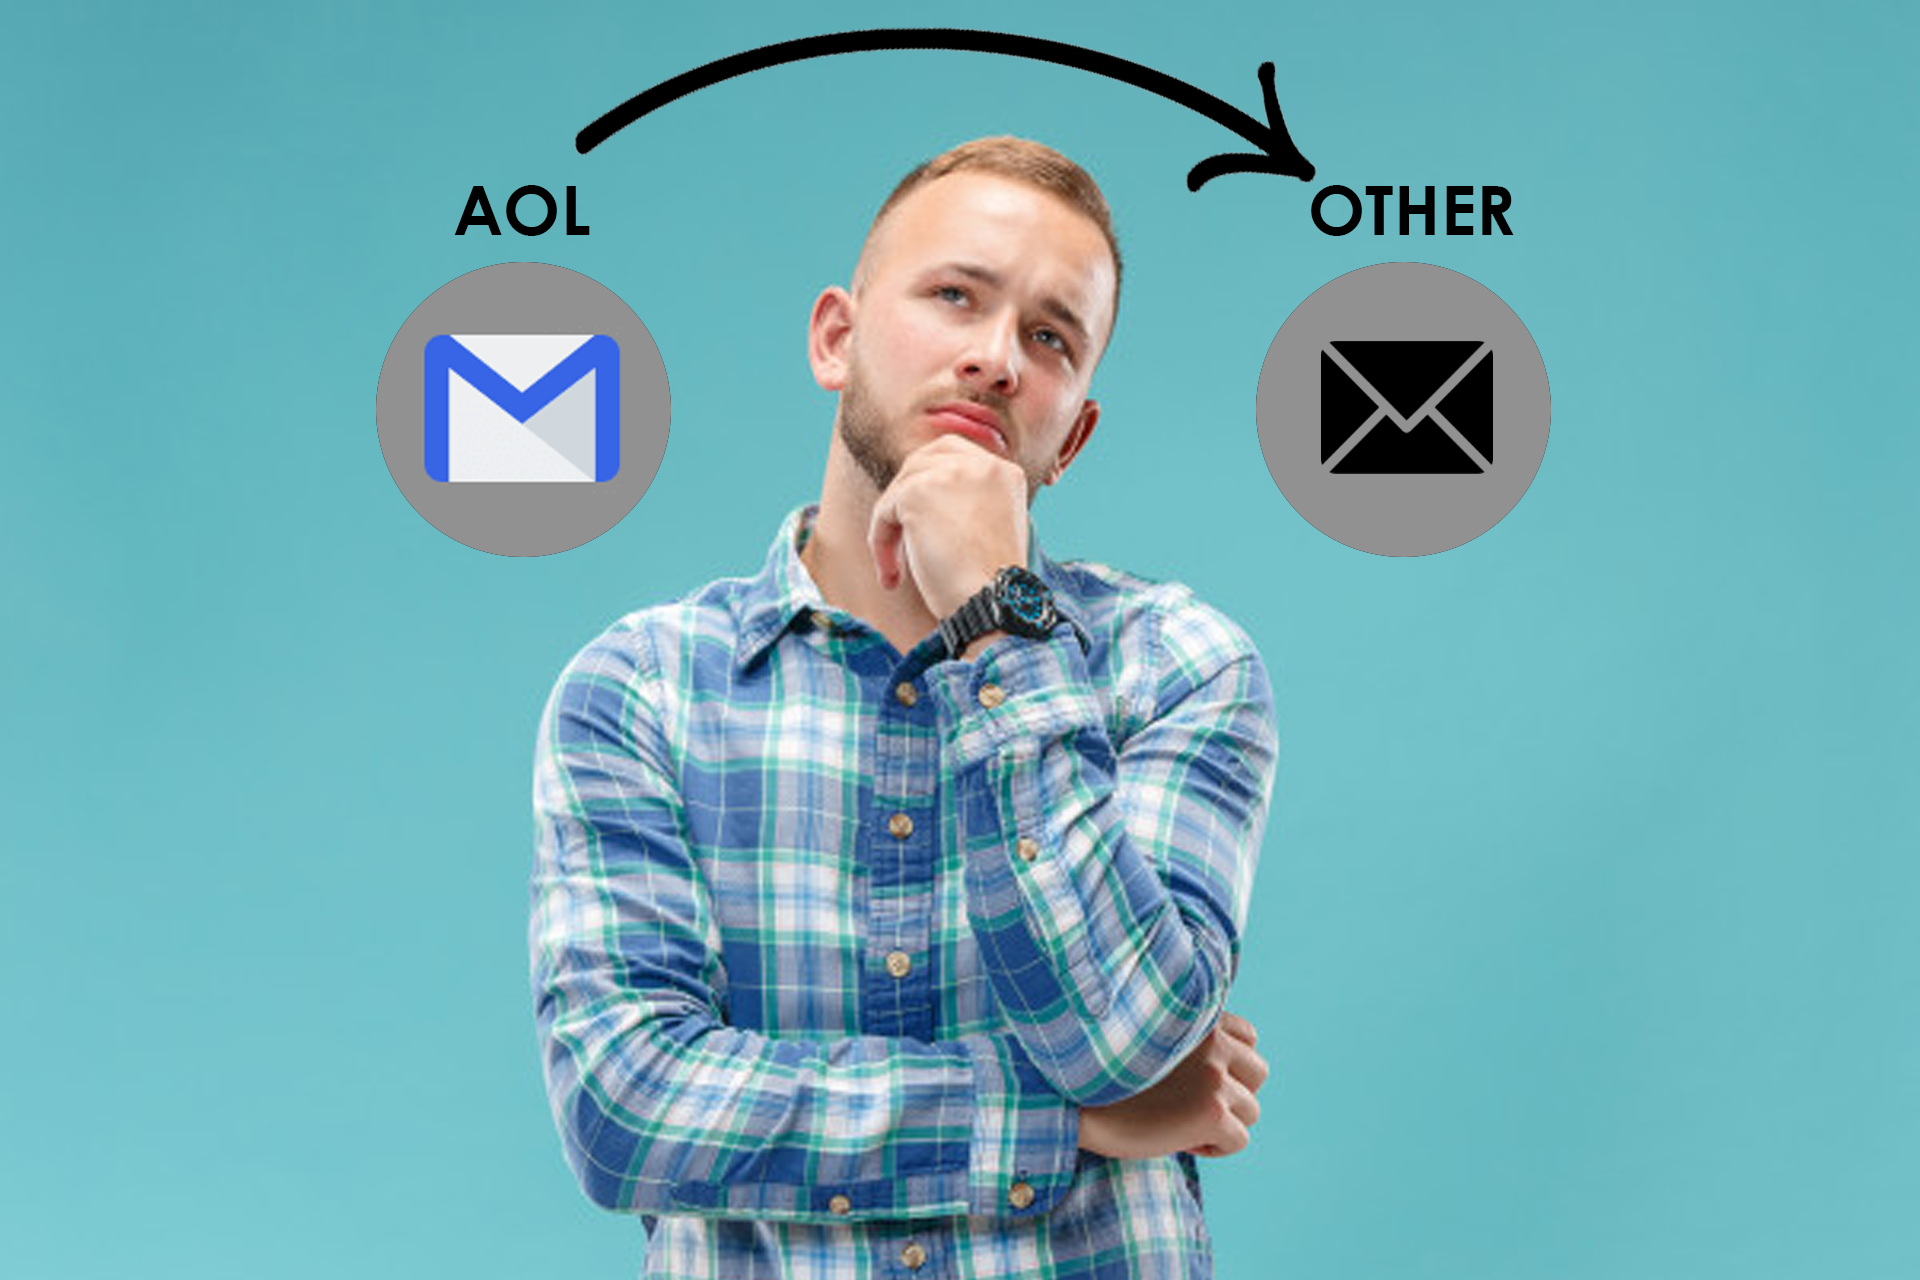 How To Automatically Switch AOL Mail To Other Email Service Providers?